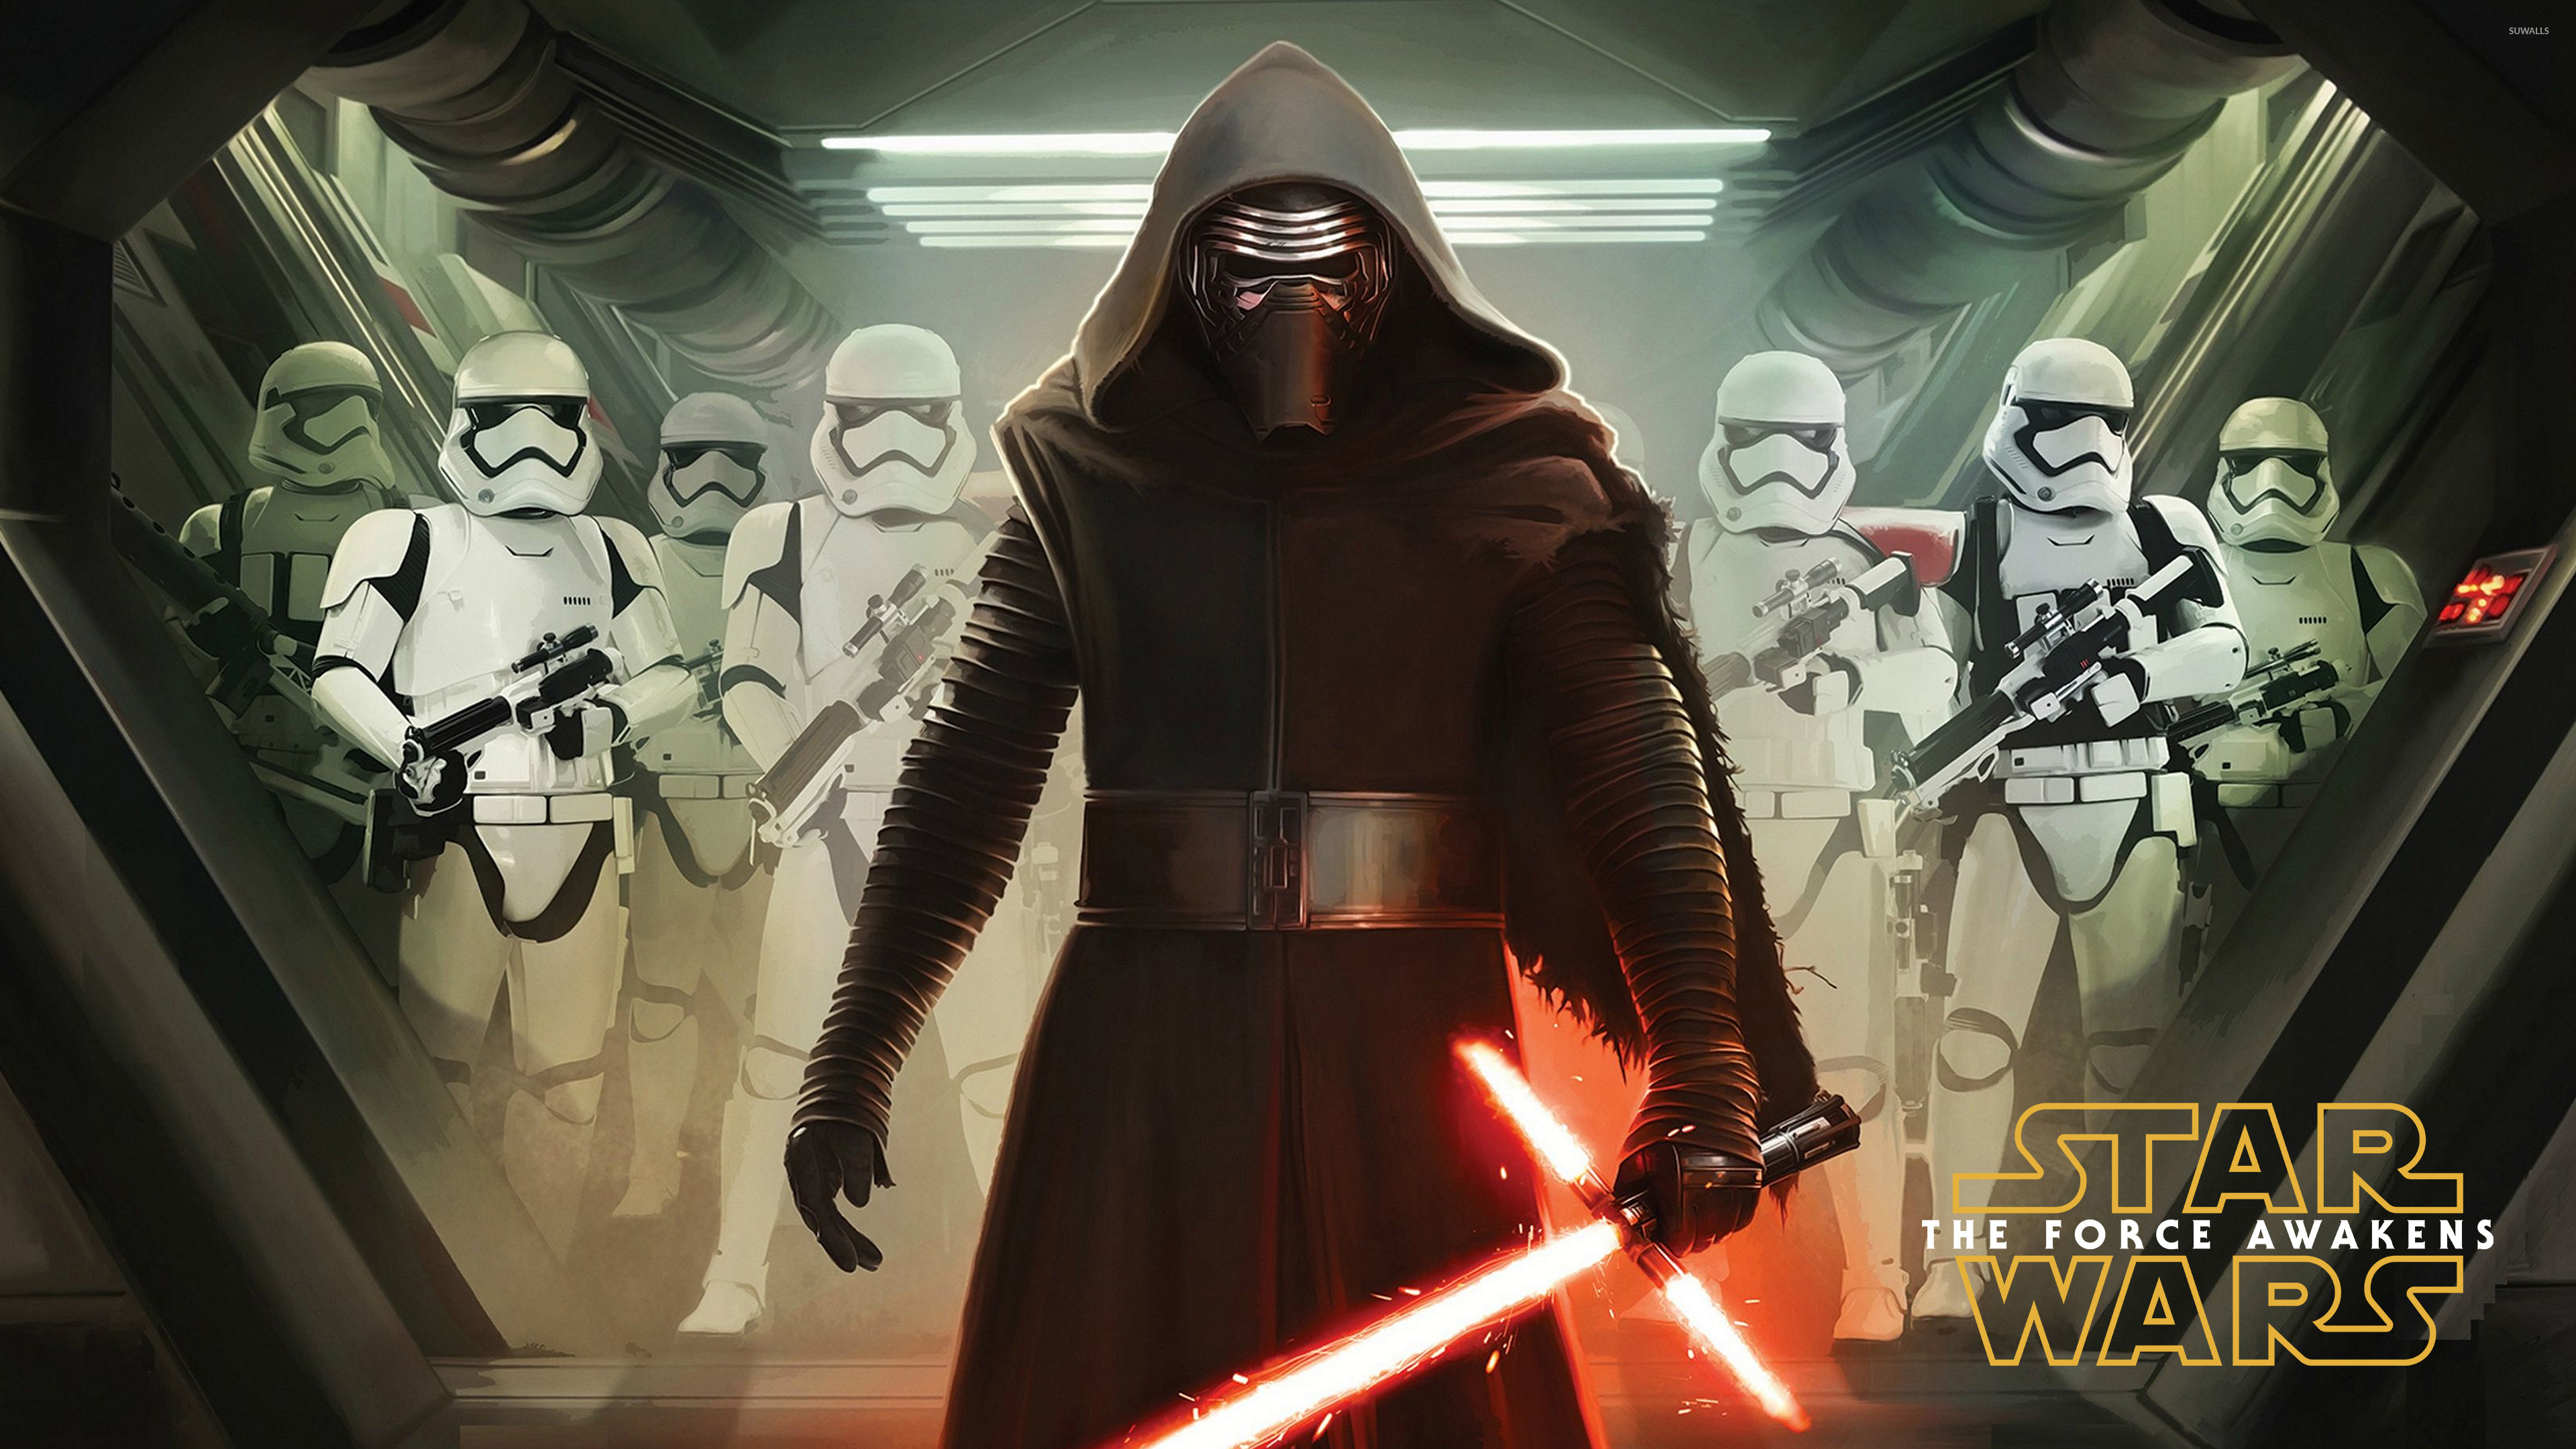 Kylo Ren With Stormtroopers Star Wars The Force Awakens Wallpaper Movie Wallpapers 51516